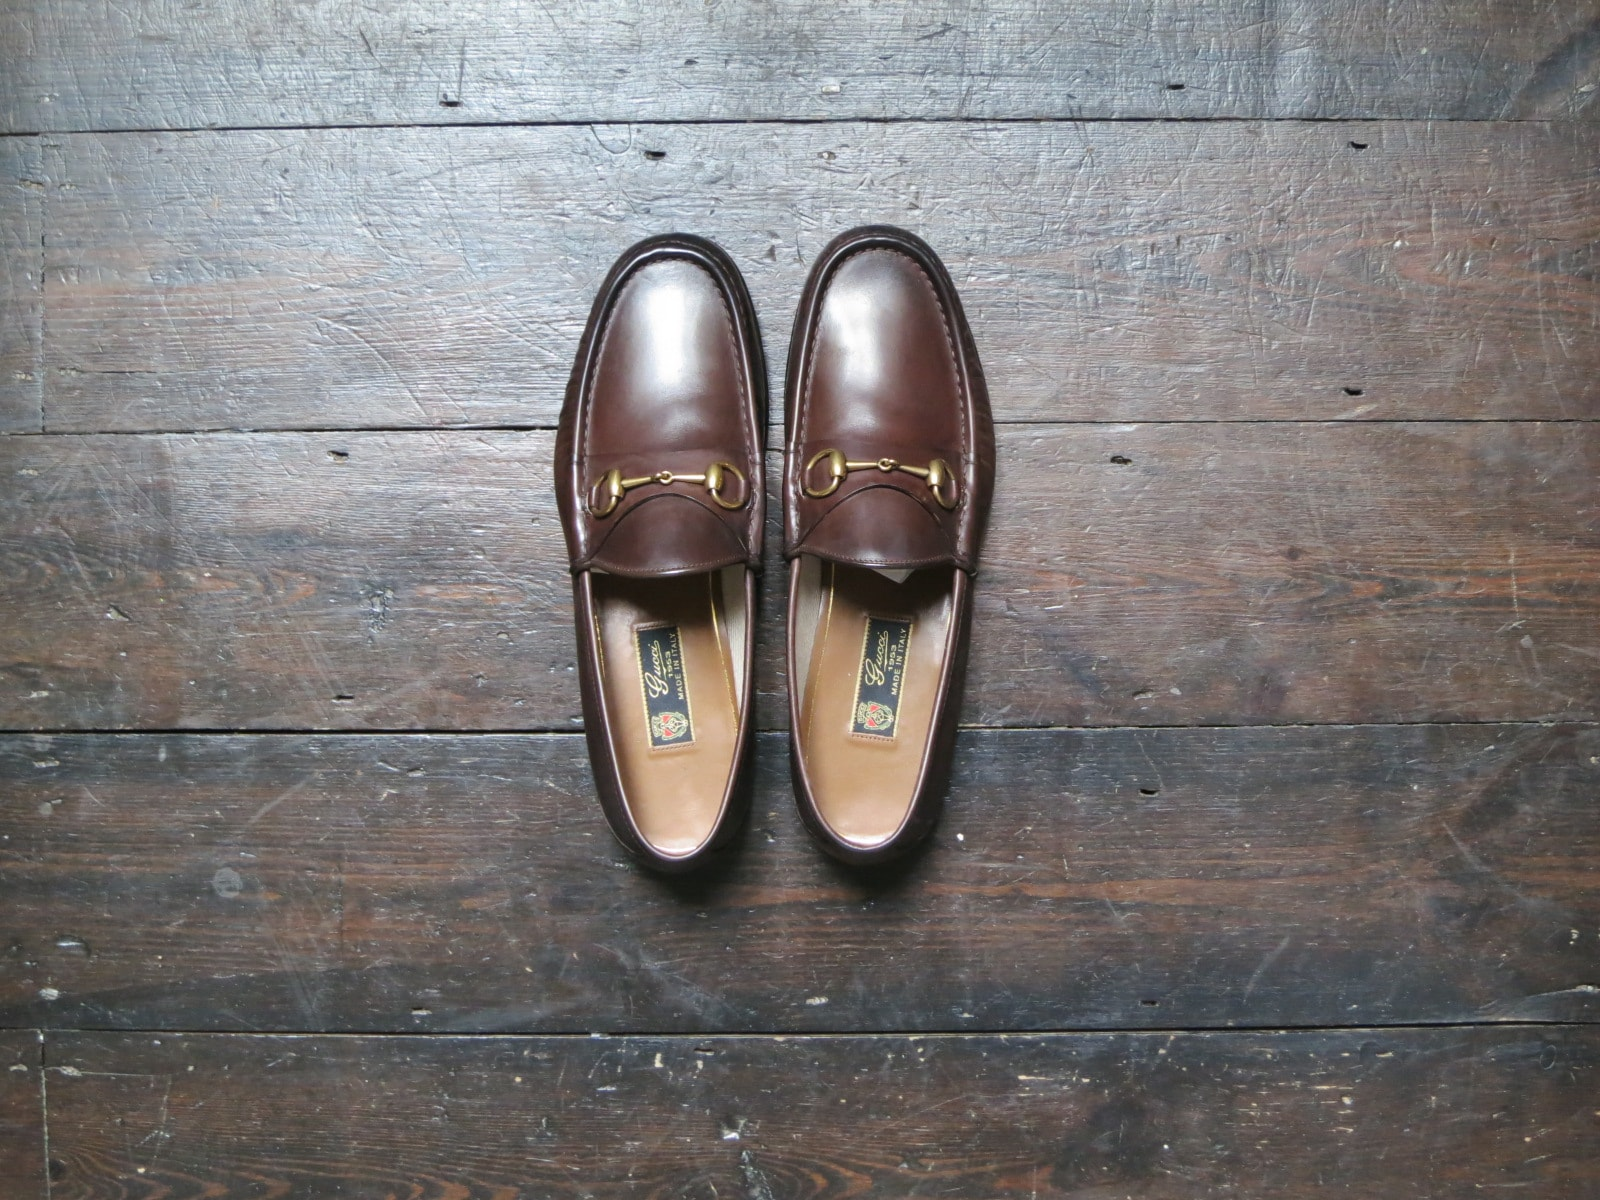 Gucci-Snaffle-Bit-Loafers-1953